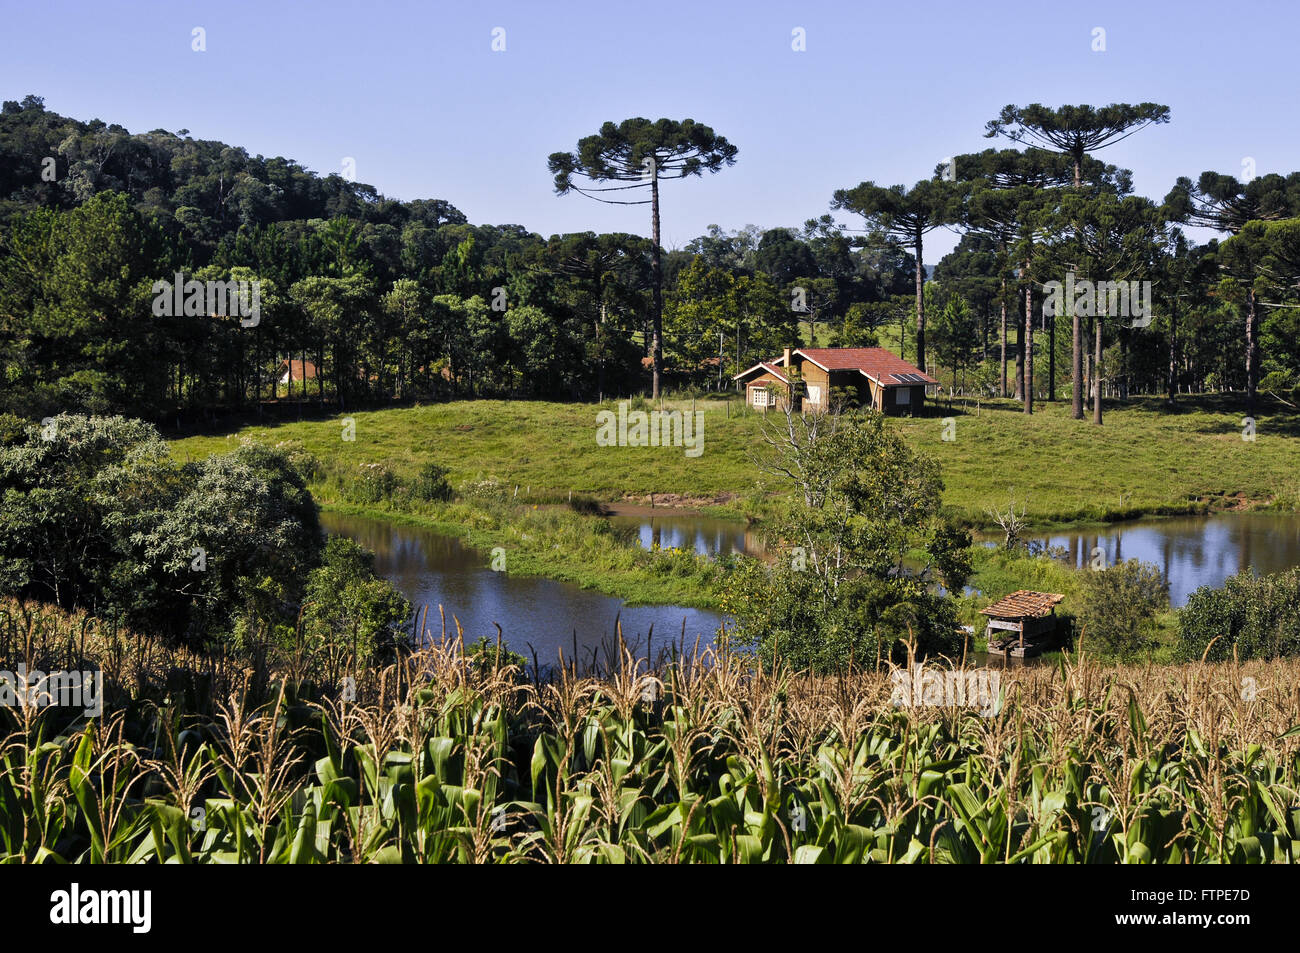 Planting corn in rural property and lakefront home in the background - Stock Image